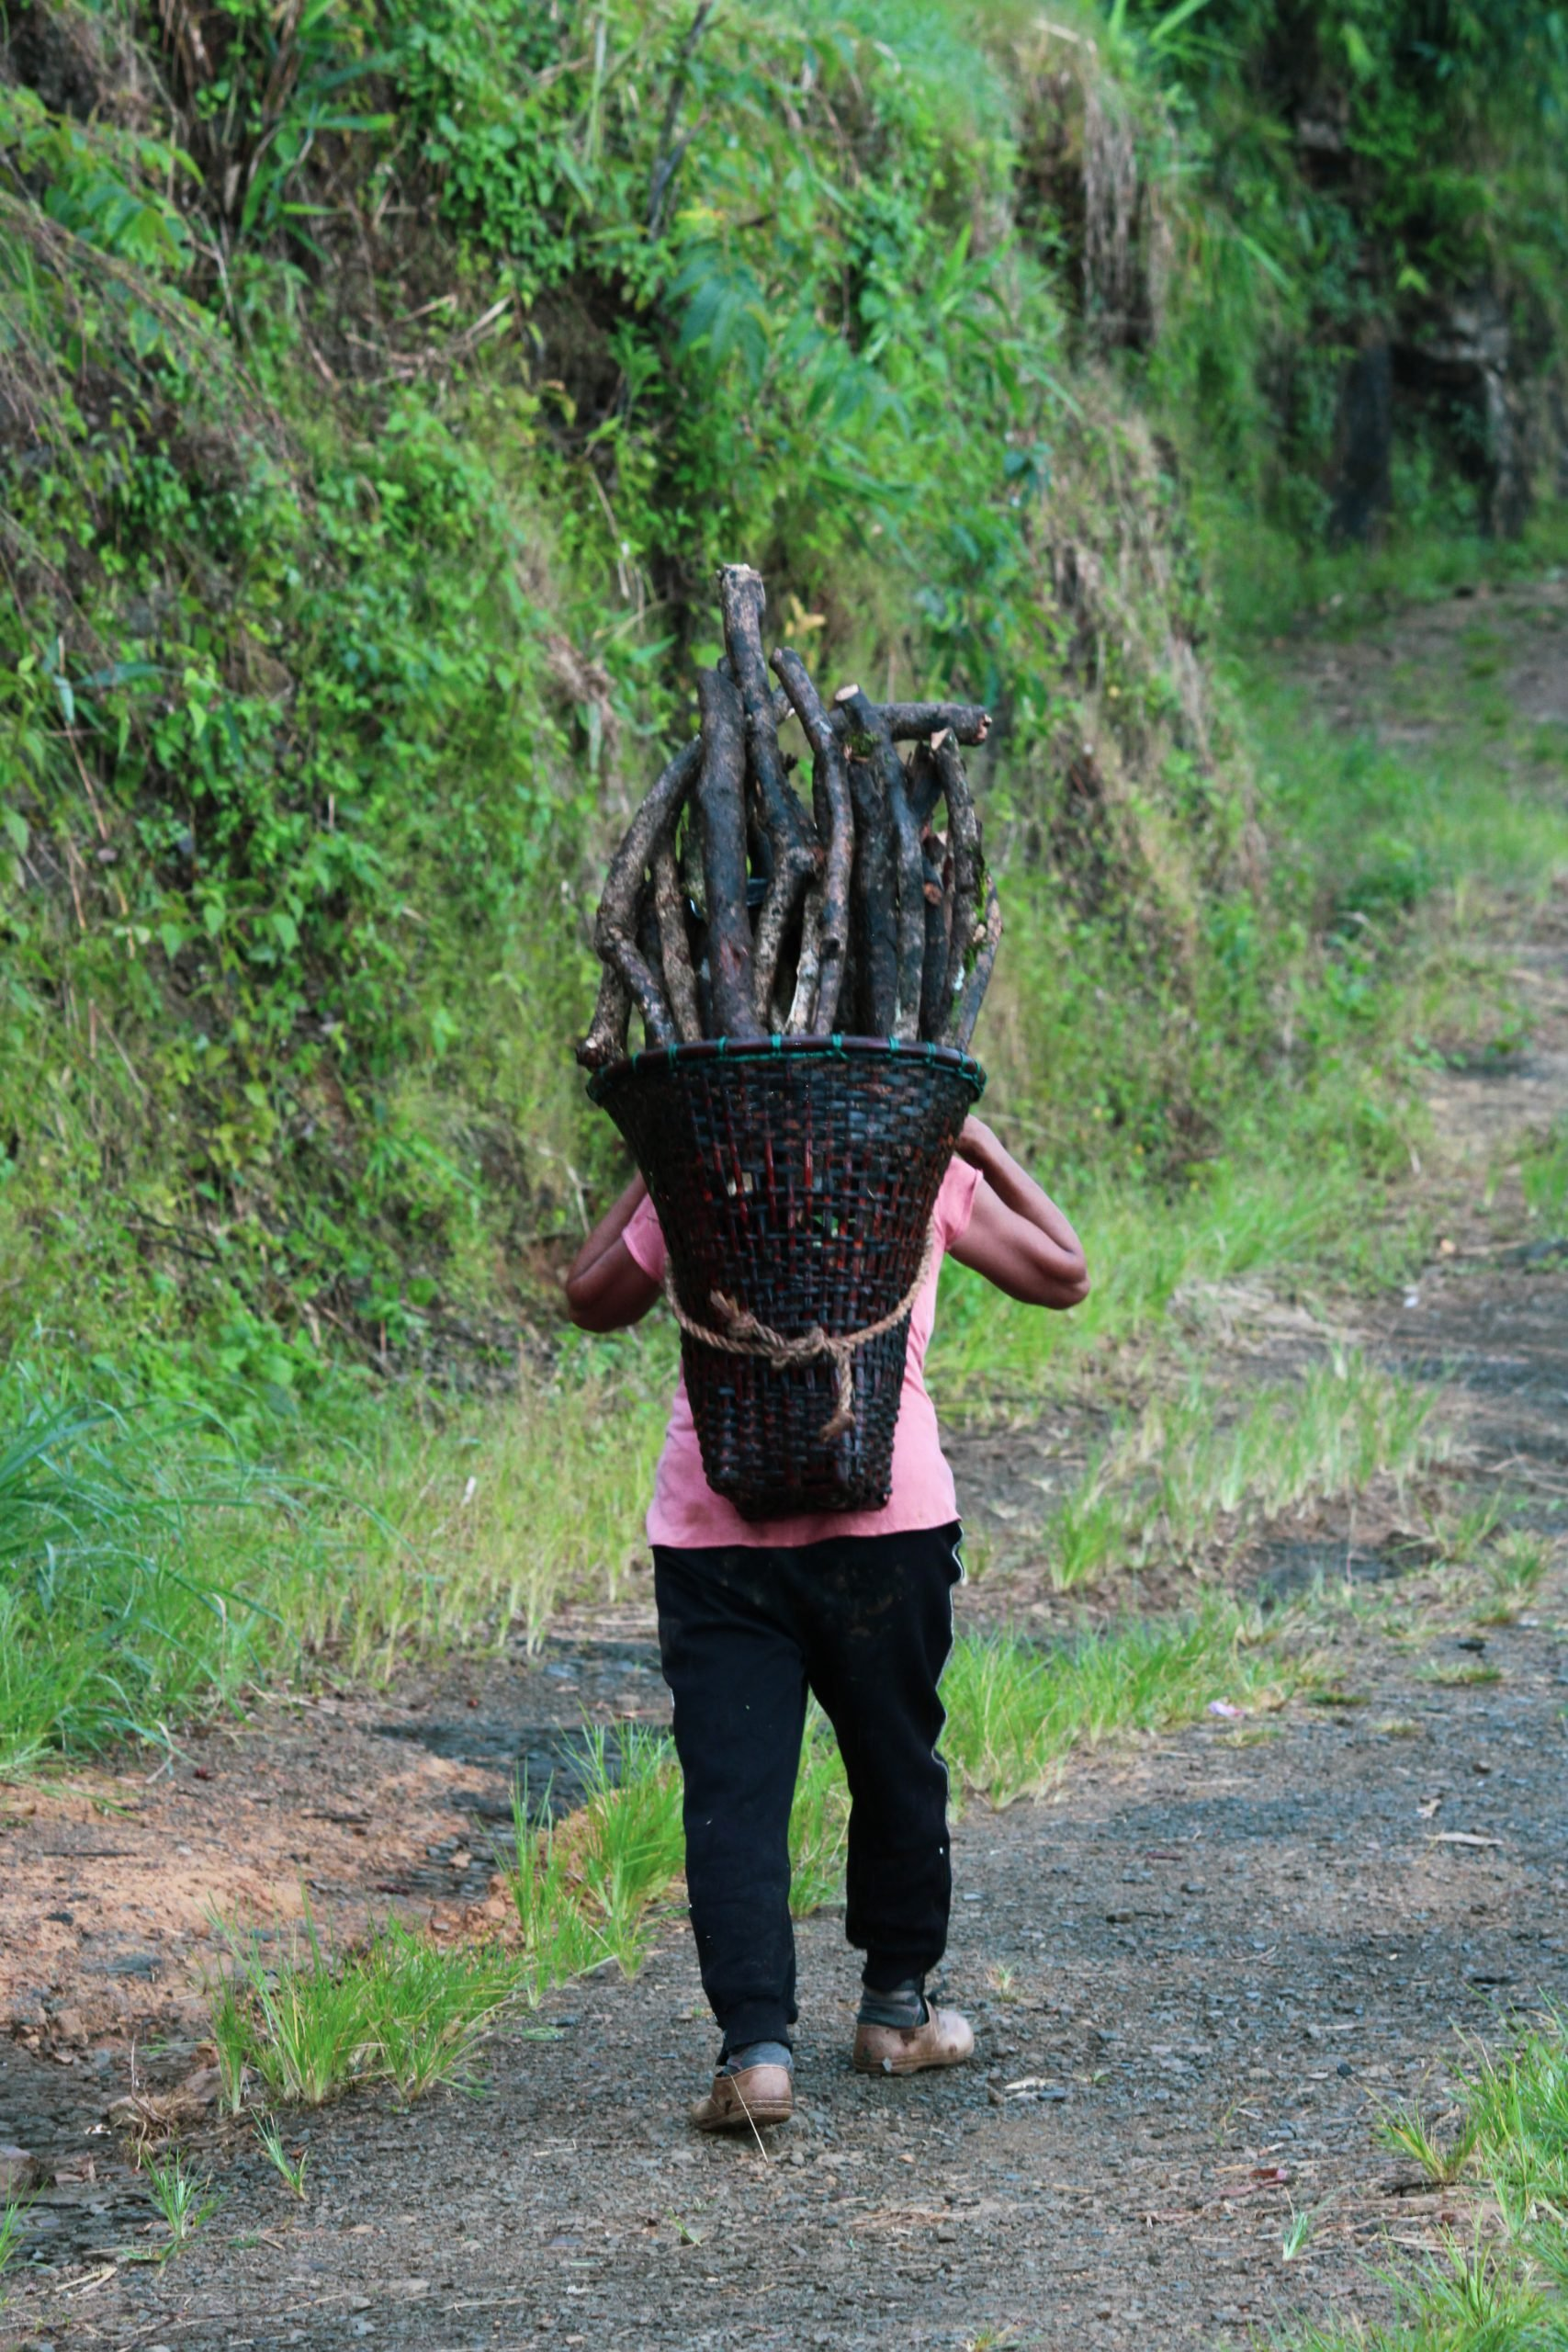 A lady carrying bamboo basket